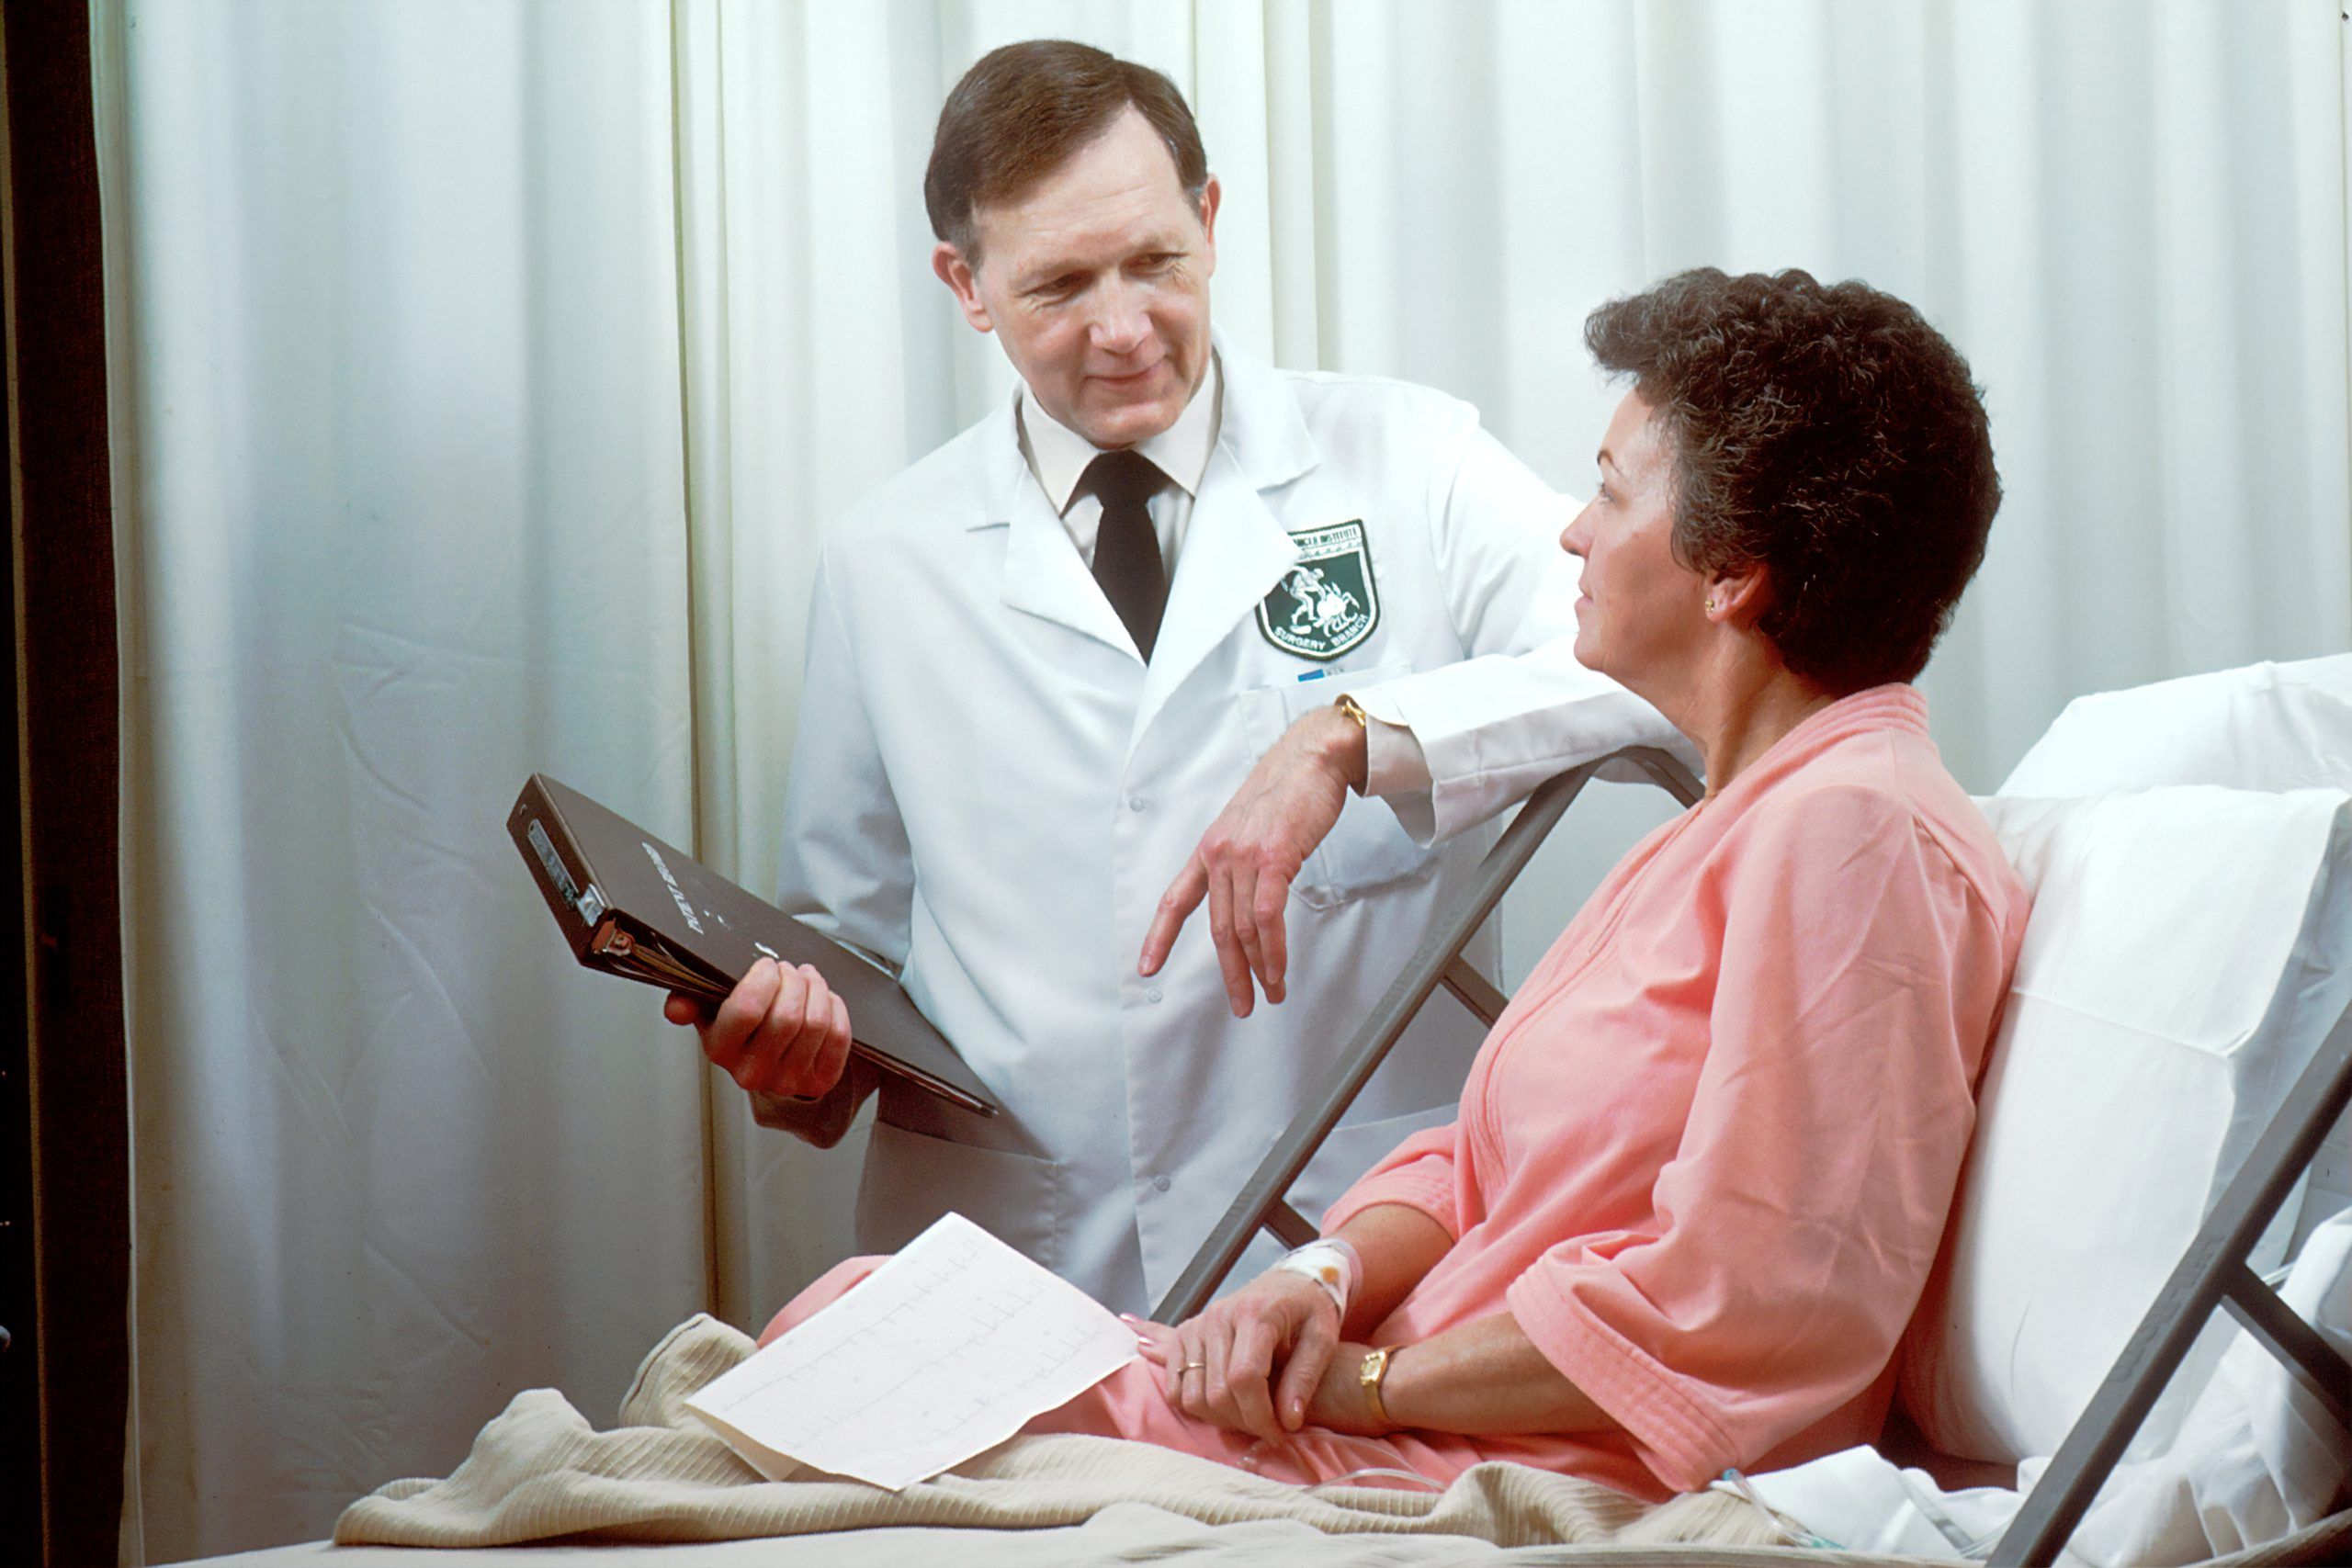 Doctor doing an annual wellness visit with a patient